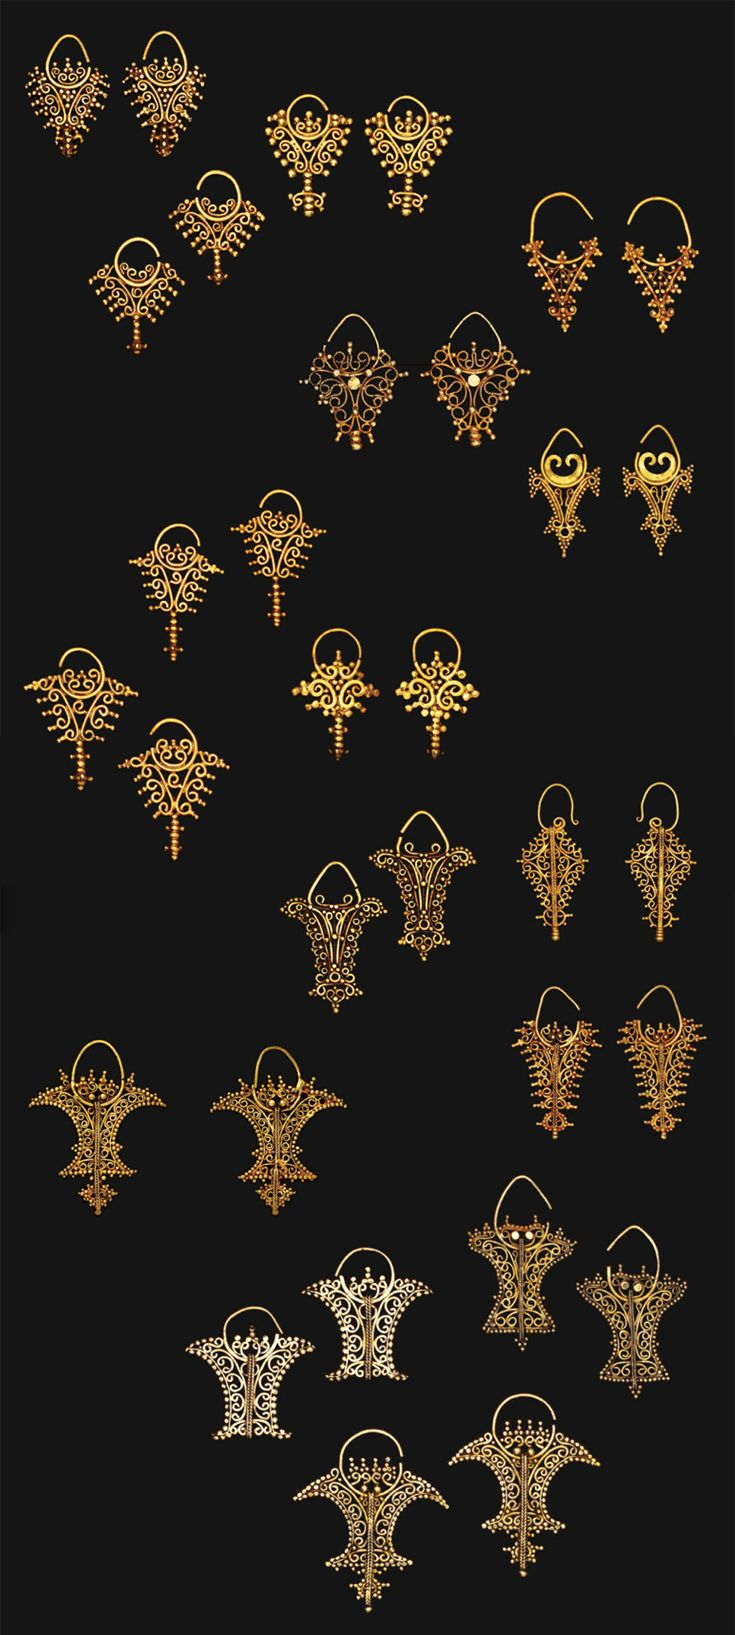 Indonesia ~ Tanimbar, Southeast Maluku | Openwork filigree earrings ~ 'kmwene' ~ gold | 18th - 19th century | Source: 'Gold Jewellery of the Indonesian Archipelago', page 80 and 81